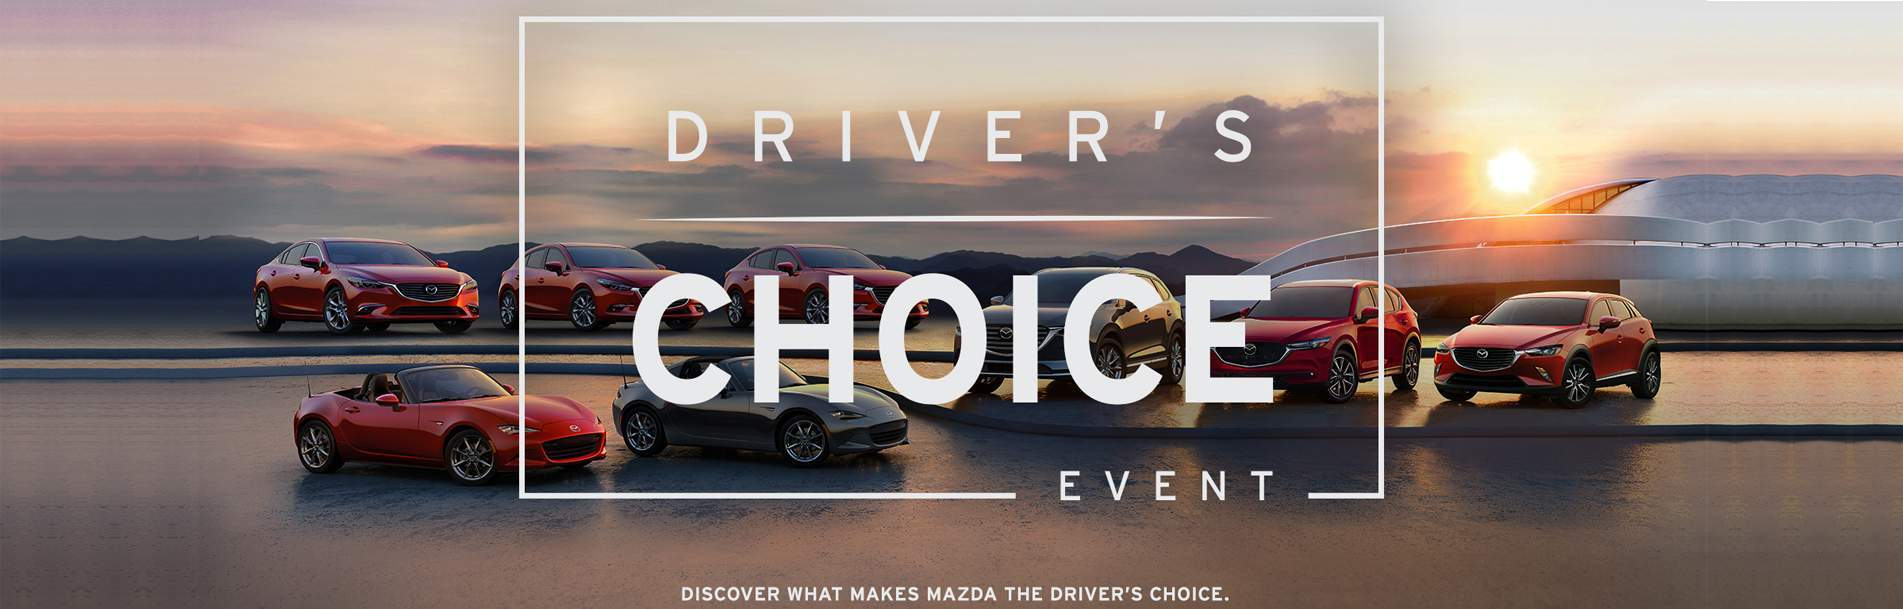 Mazda's Driver's Choice Event